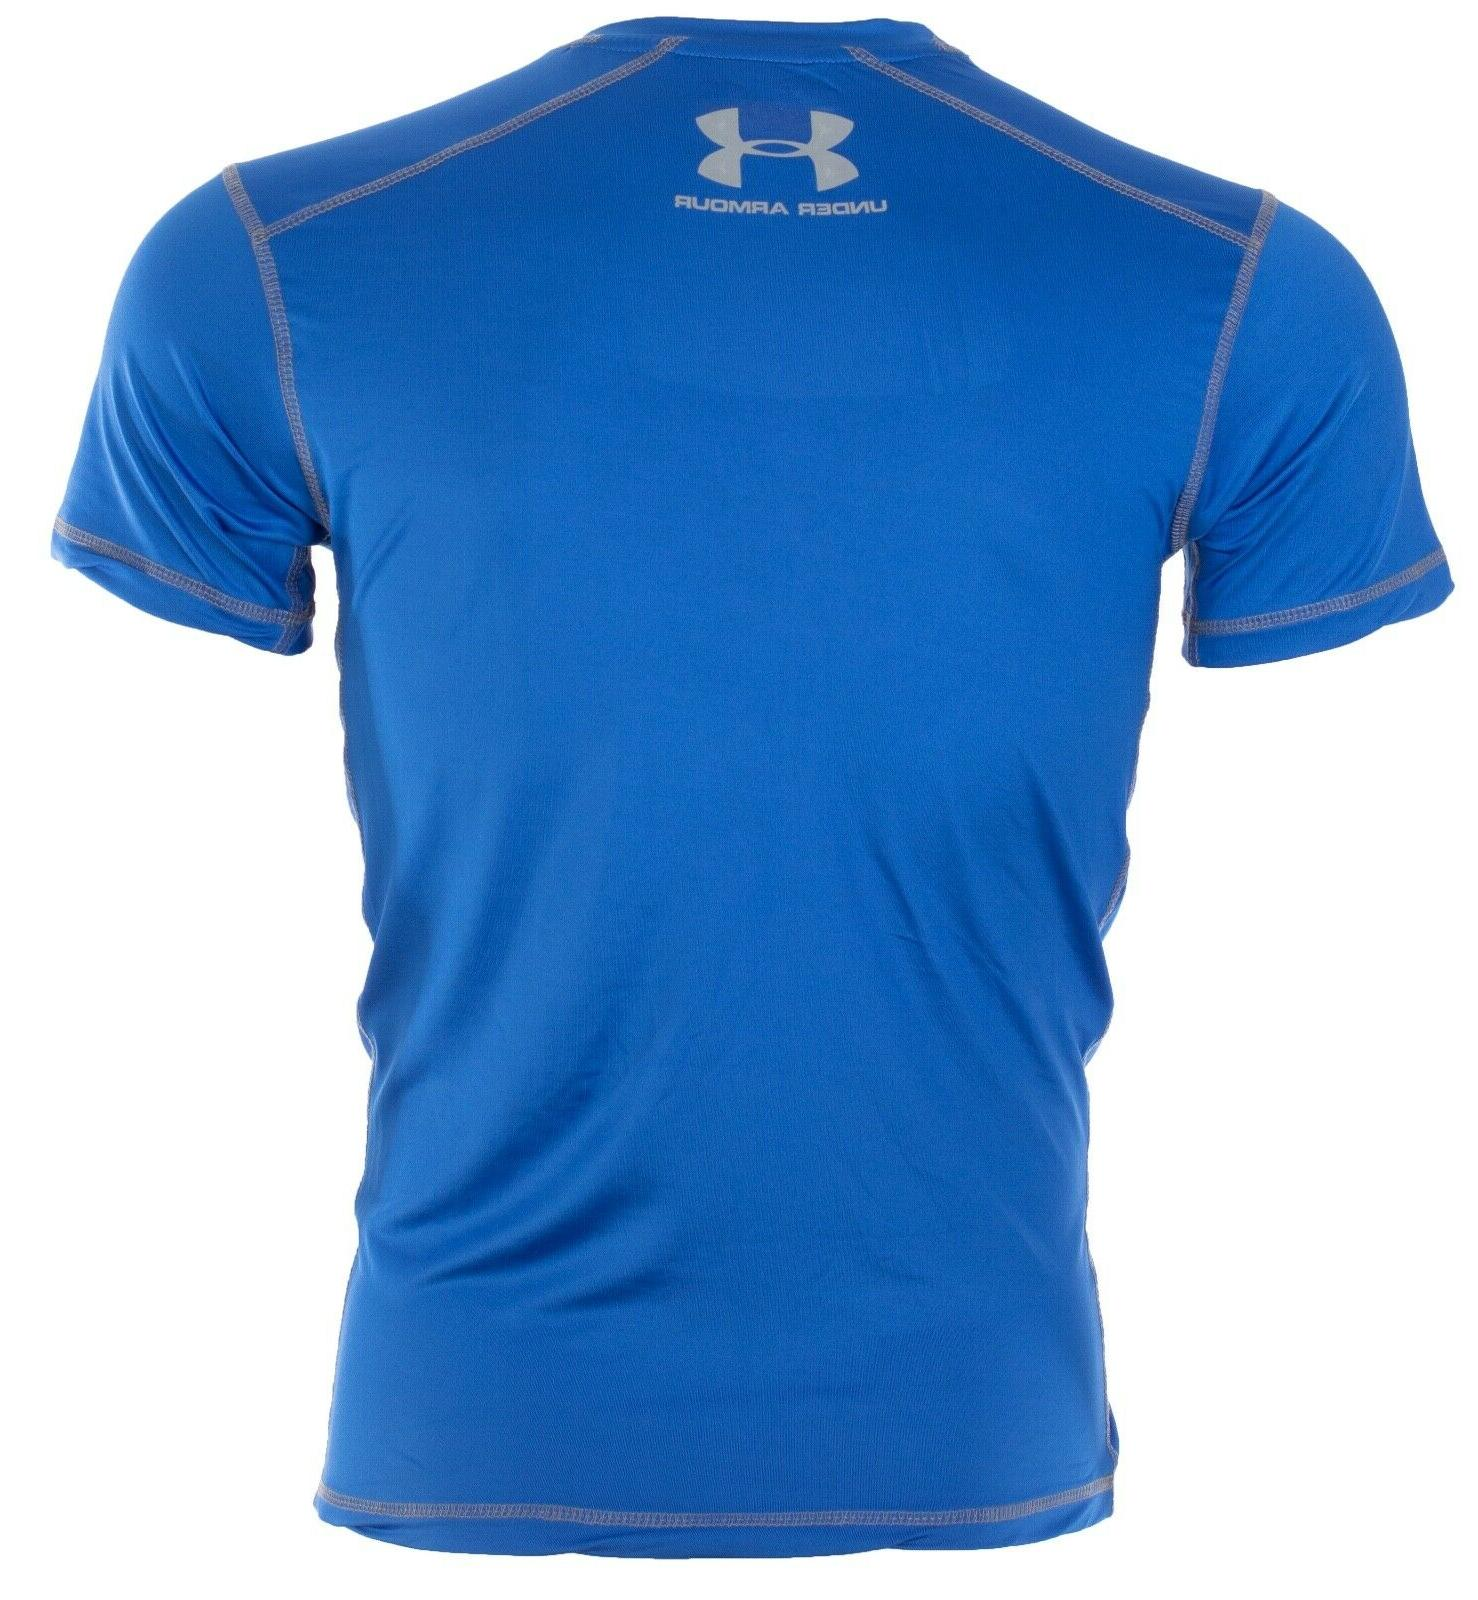 UNDER ARMOUR T-Shirt SOLID ROYAL BLUE $40